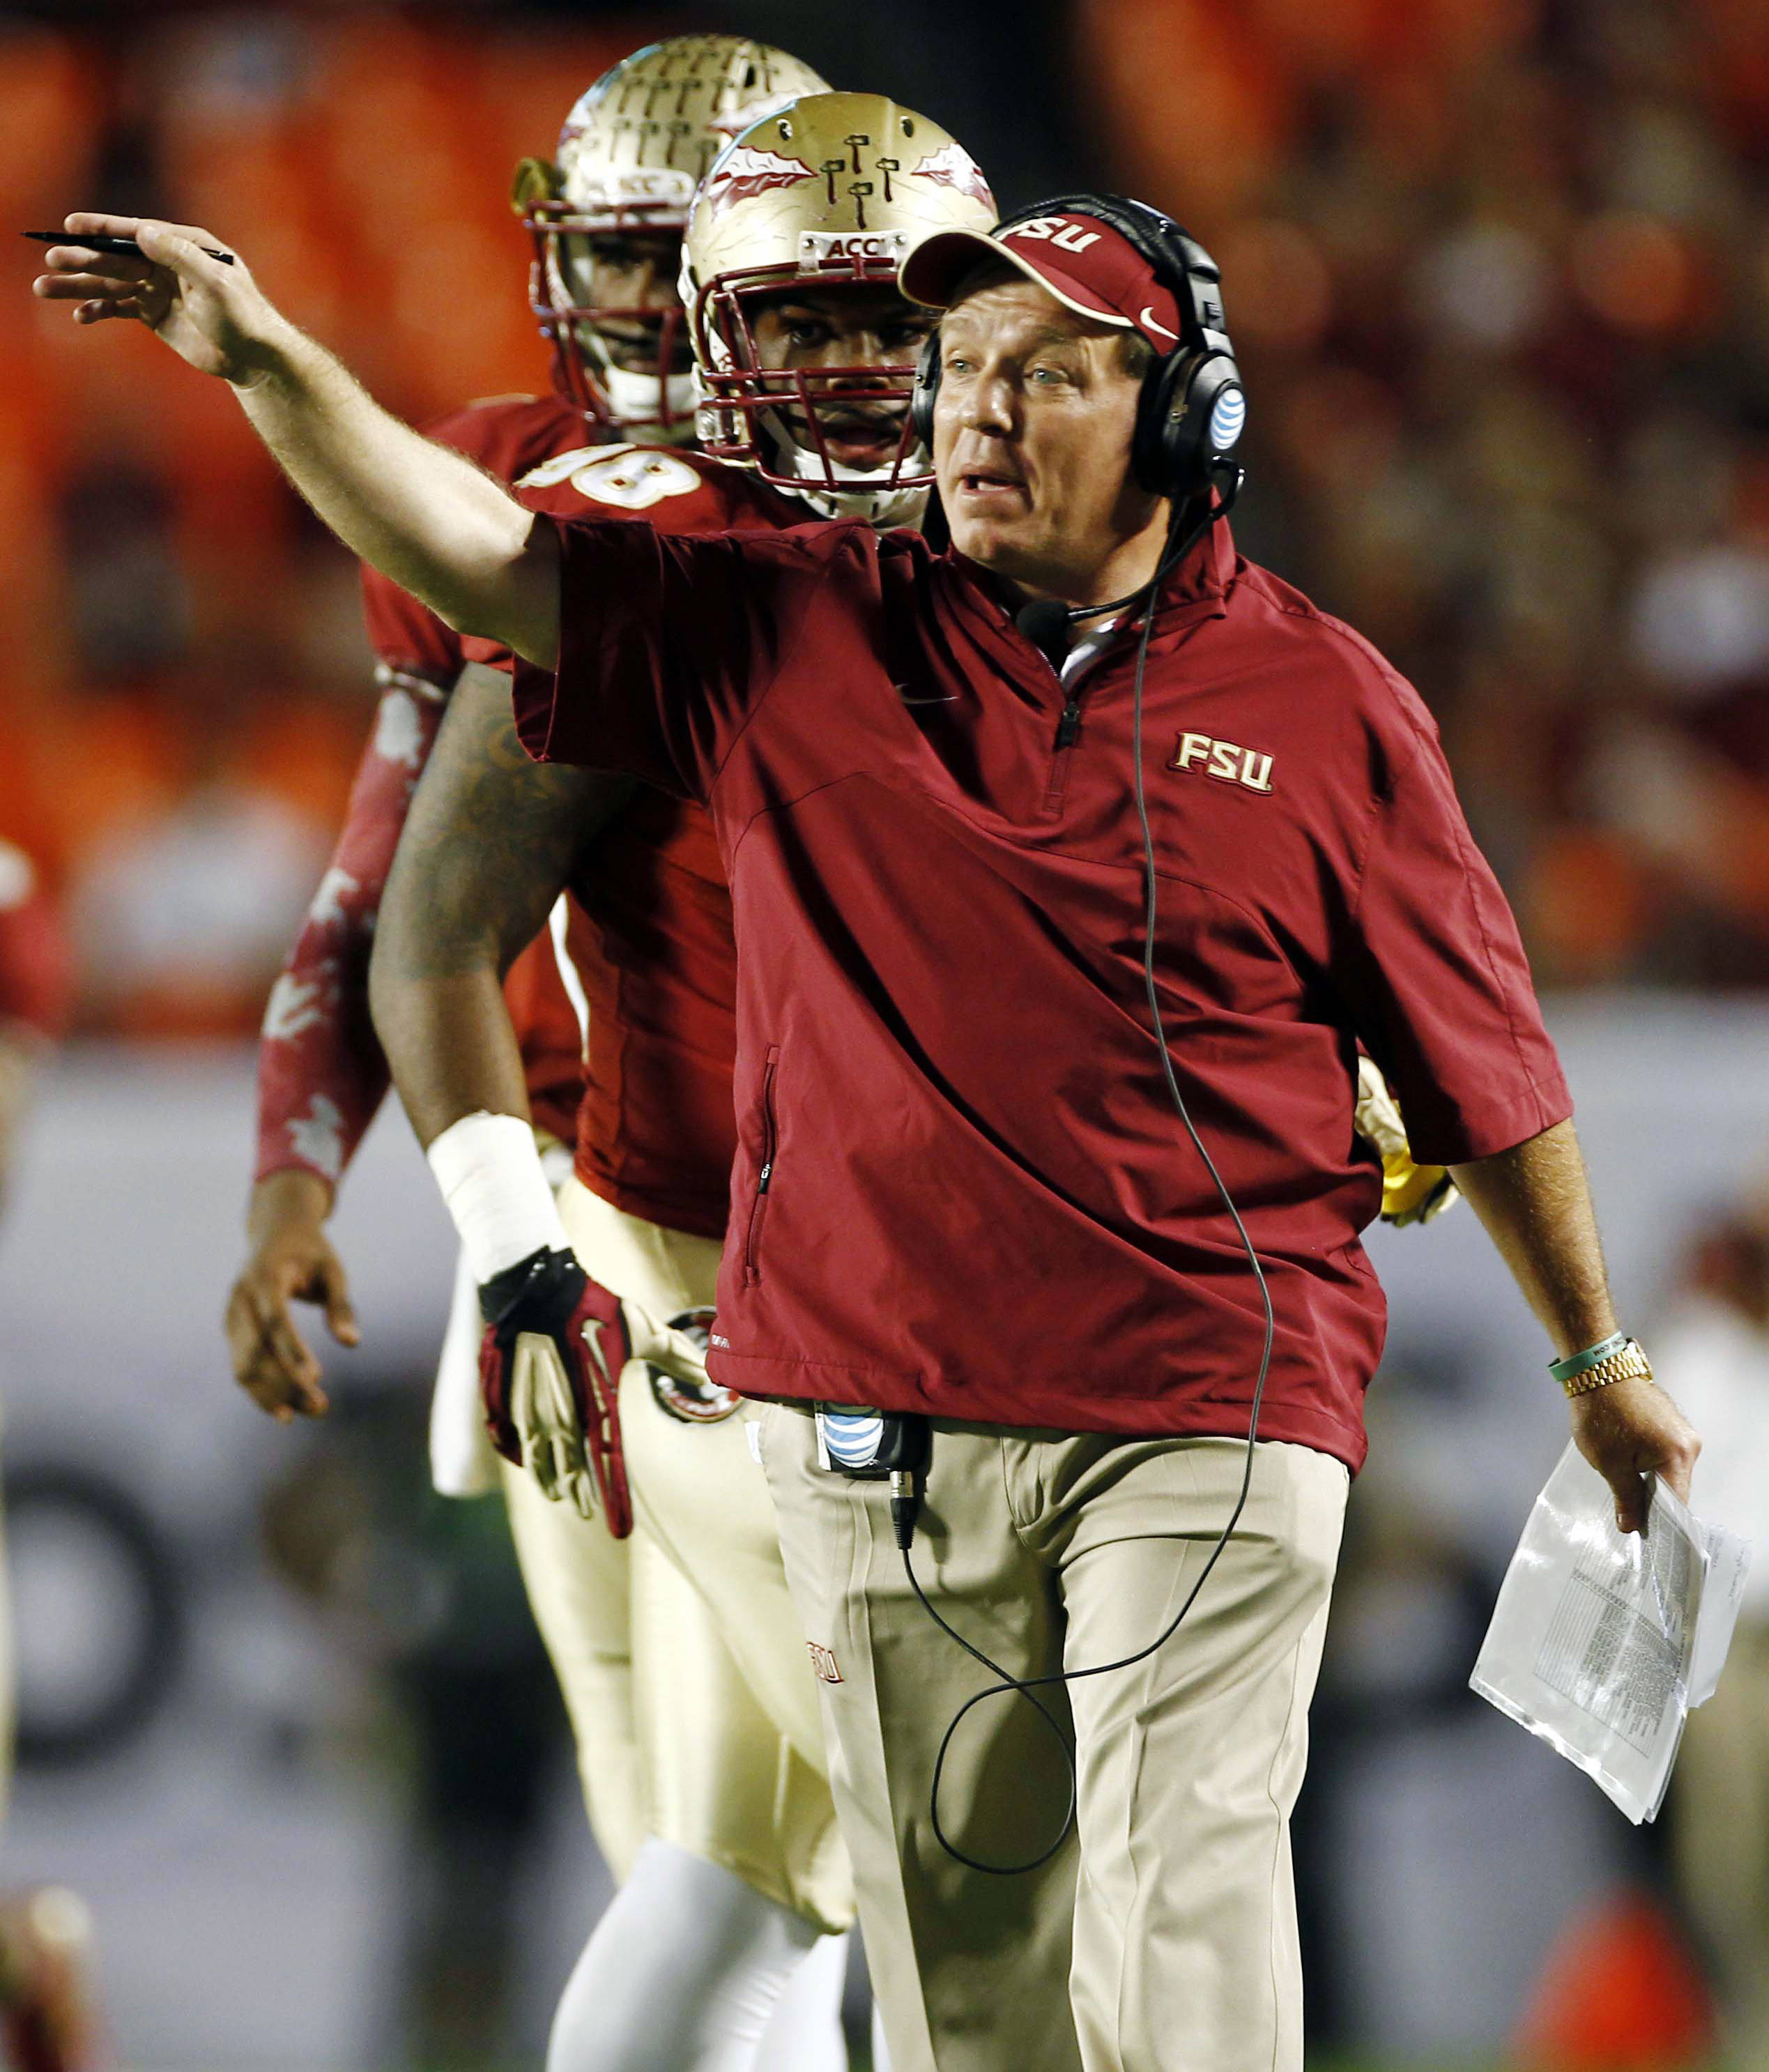 Florida State head coach Jimbo Fisher gestures during the first half of the Orange Bowl NCAA college football game against Northern Illinois, Tuesday, Jan. 1, 2013, in Miami. (AP Photo/J Pat Carter)